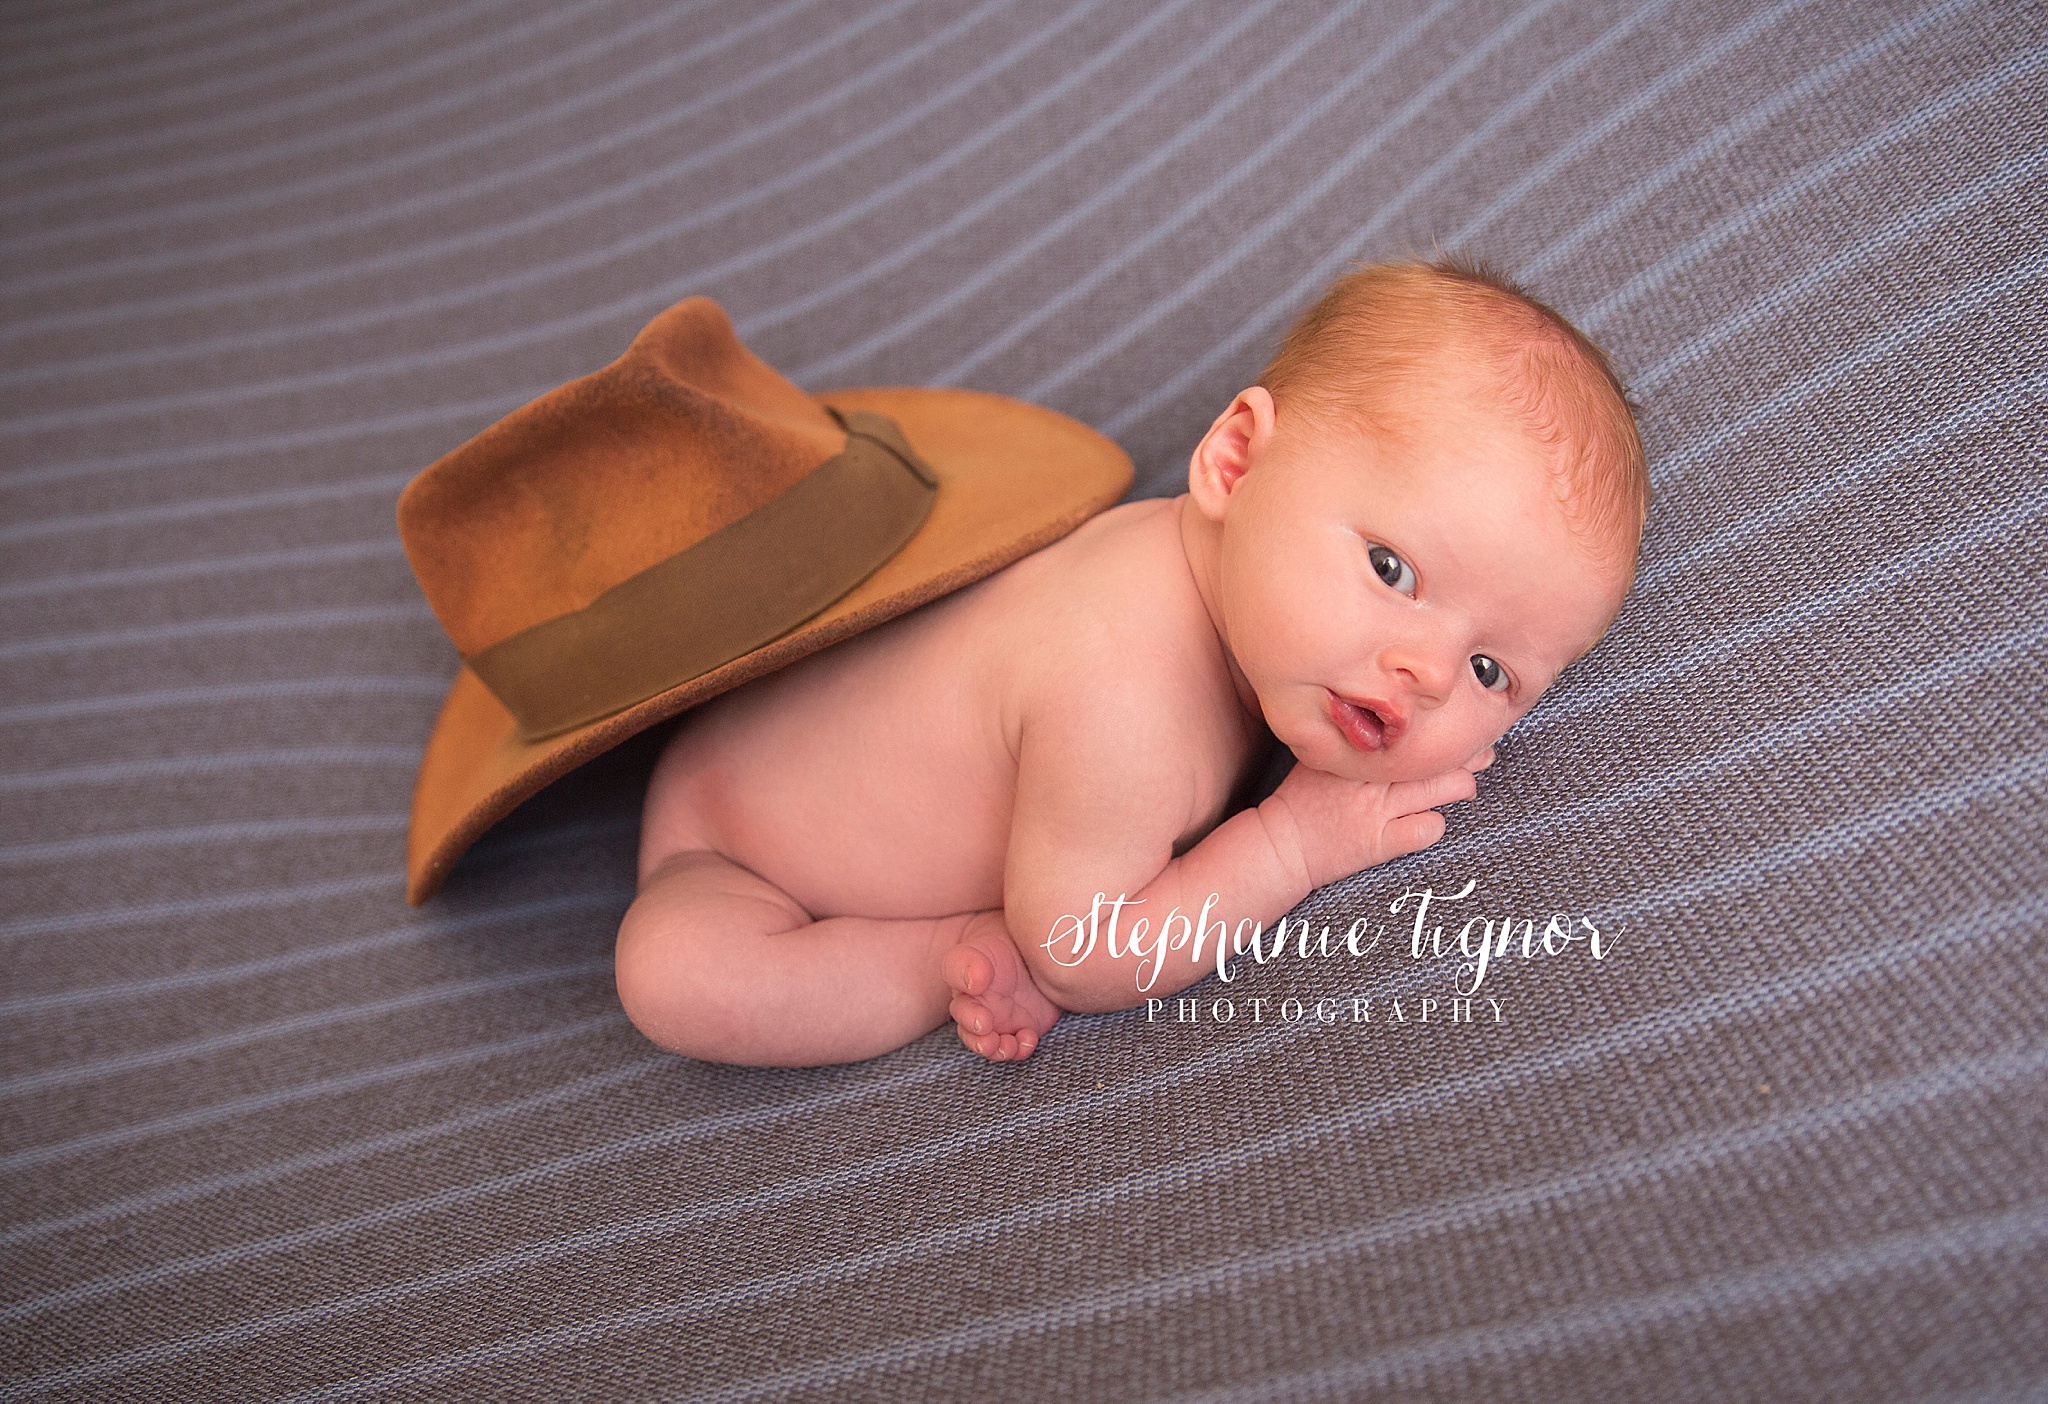 Stephanie Tignor Photography | Fredericksburg VA Newborn Photographer | Warrenton VA Newborn Photographer | Stafford VA Newborn Photographer | Newborn Photographer, simple newborn portraits for baby boy, newborn photography by Stephanie Tignor Photography